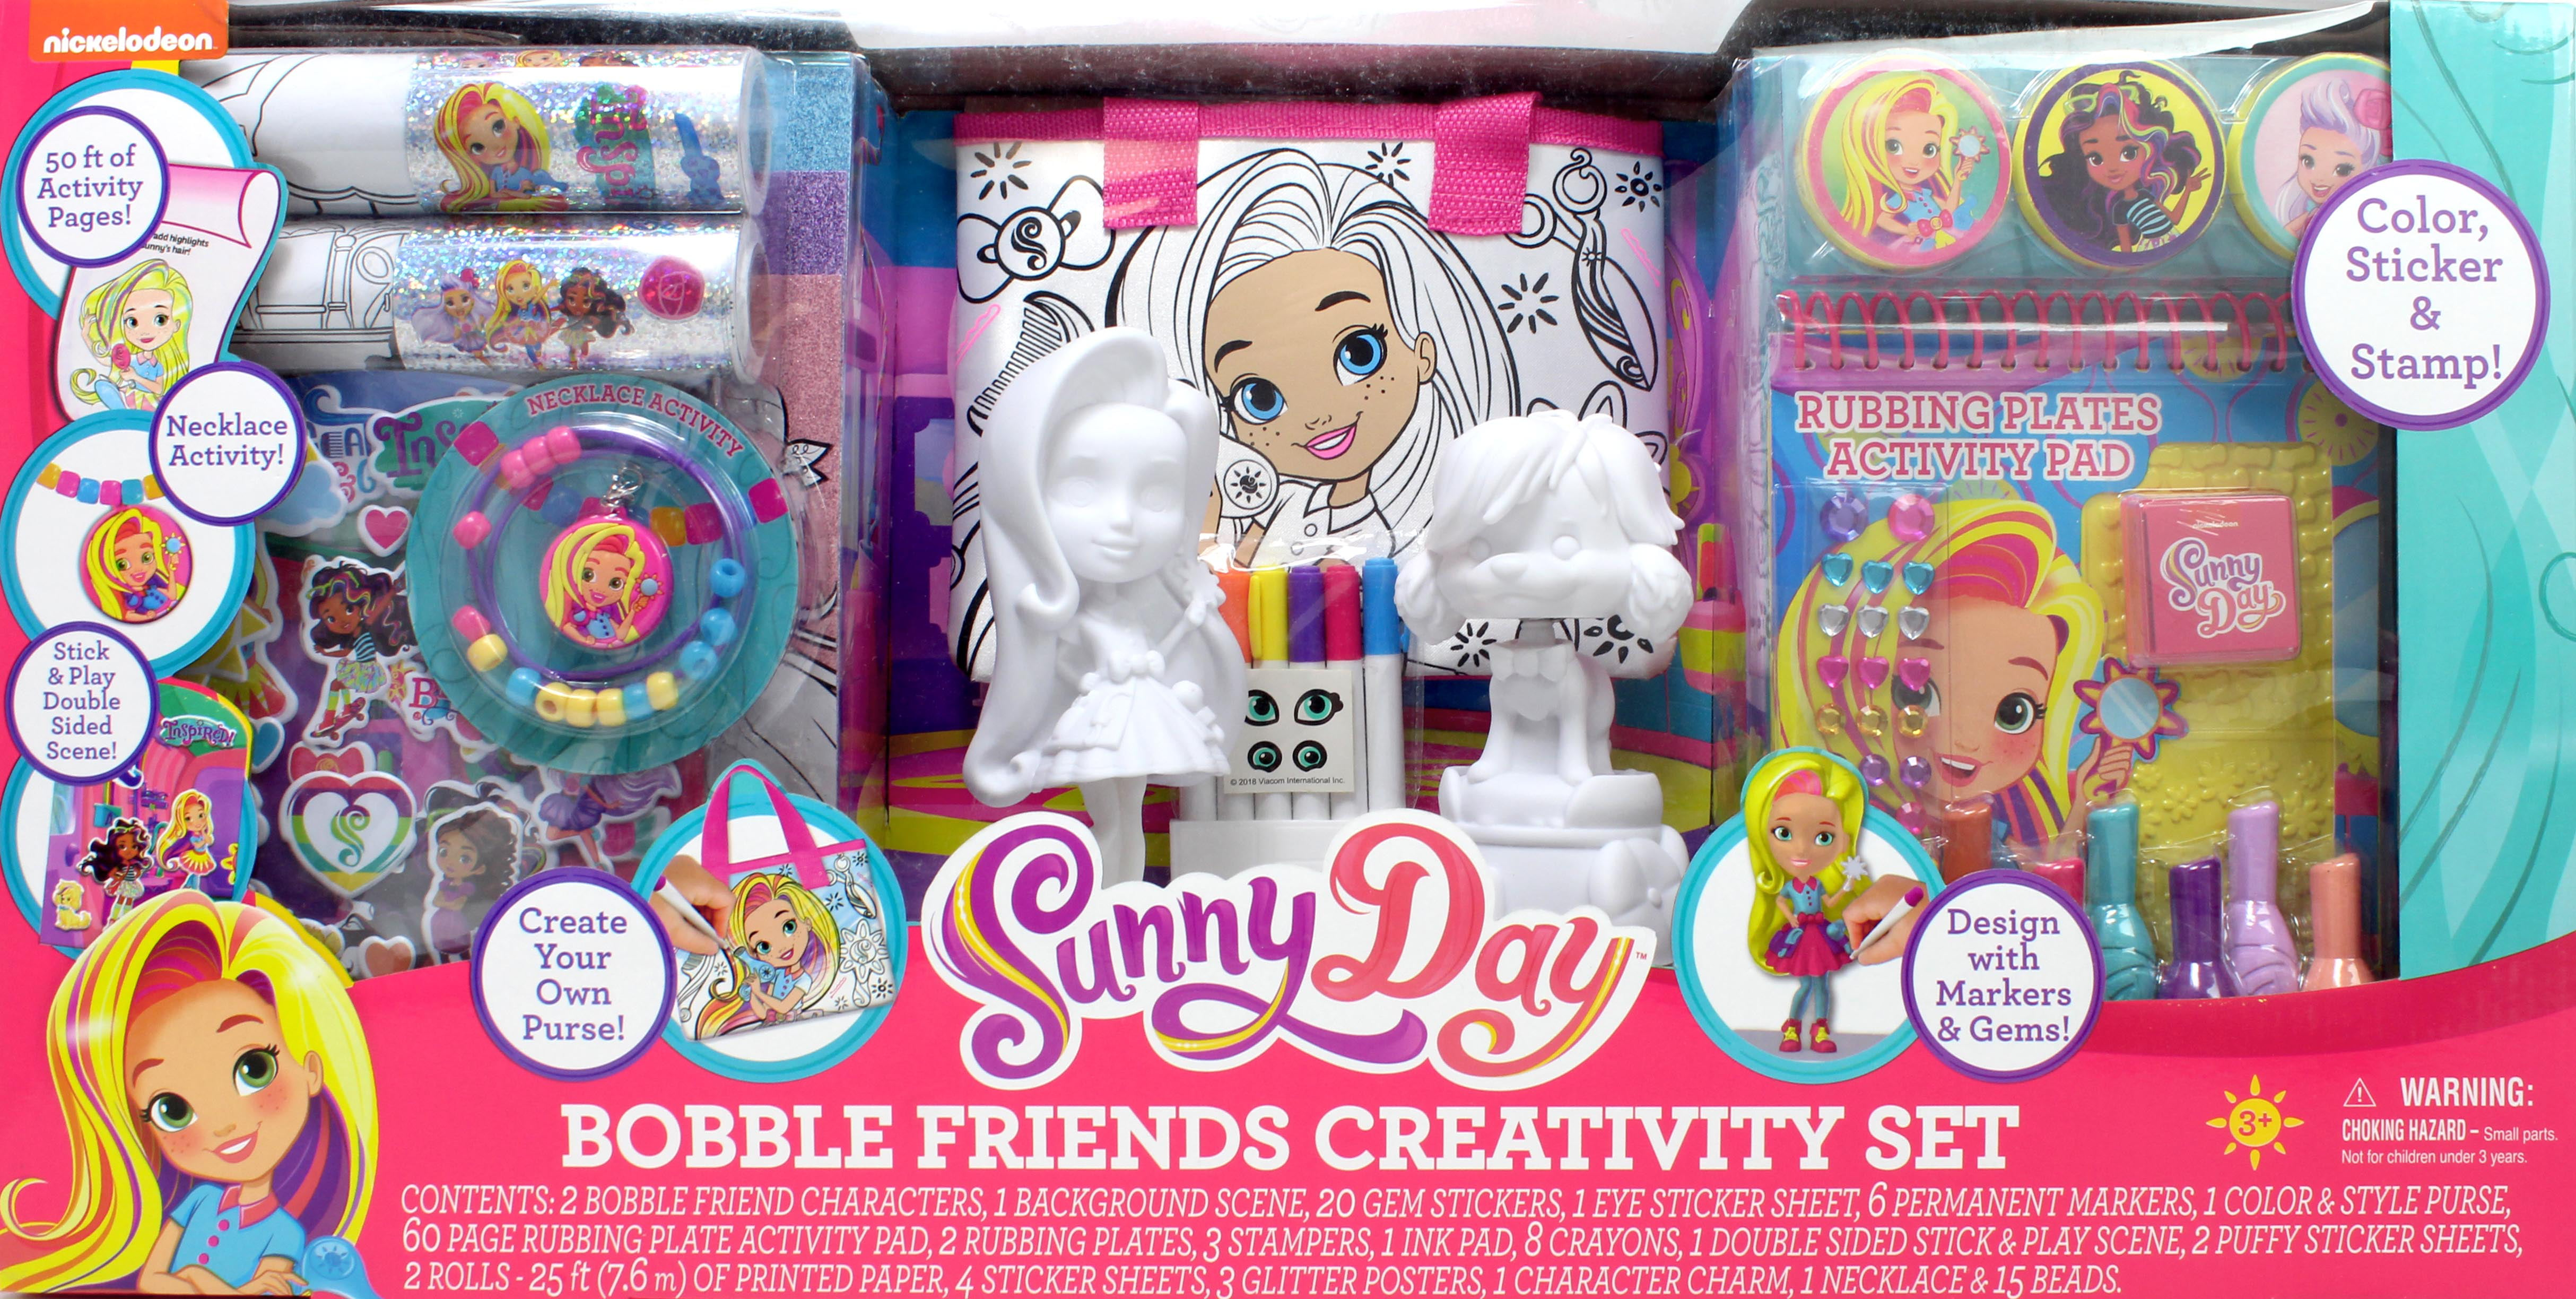 Nickelodeon Sunny Day Bobble Friends Creativity Set